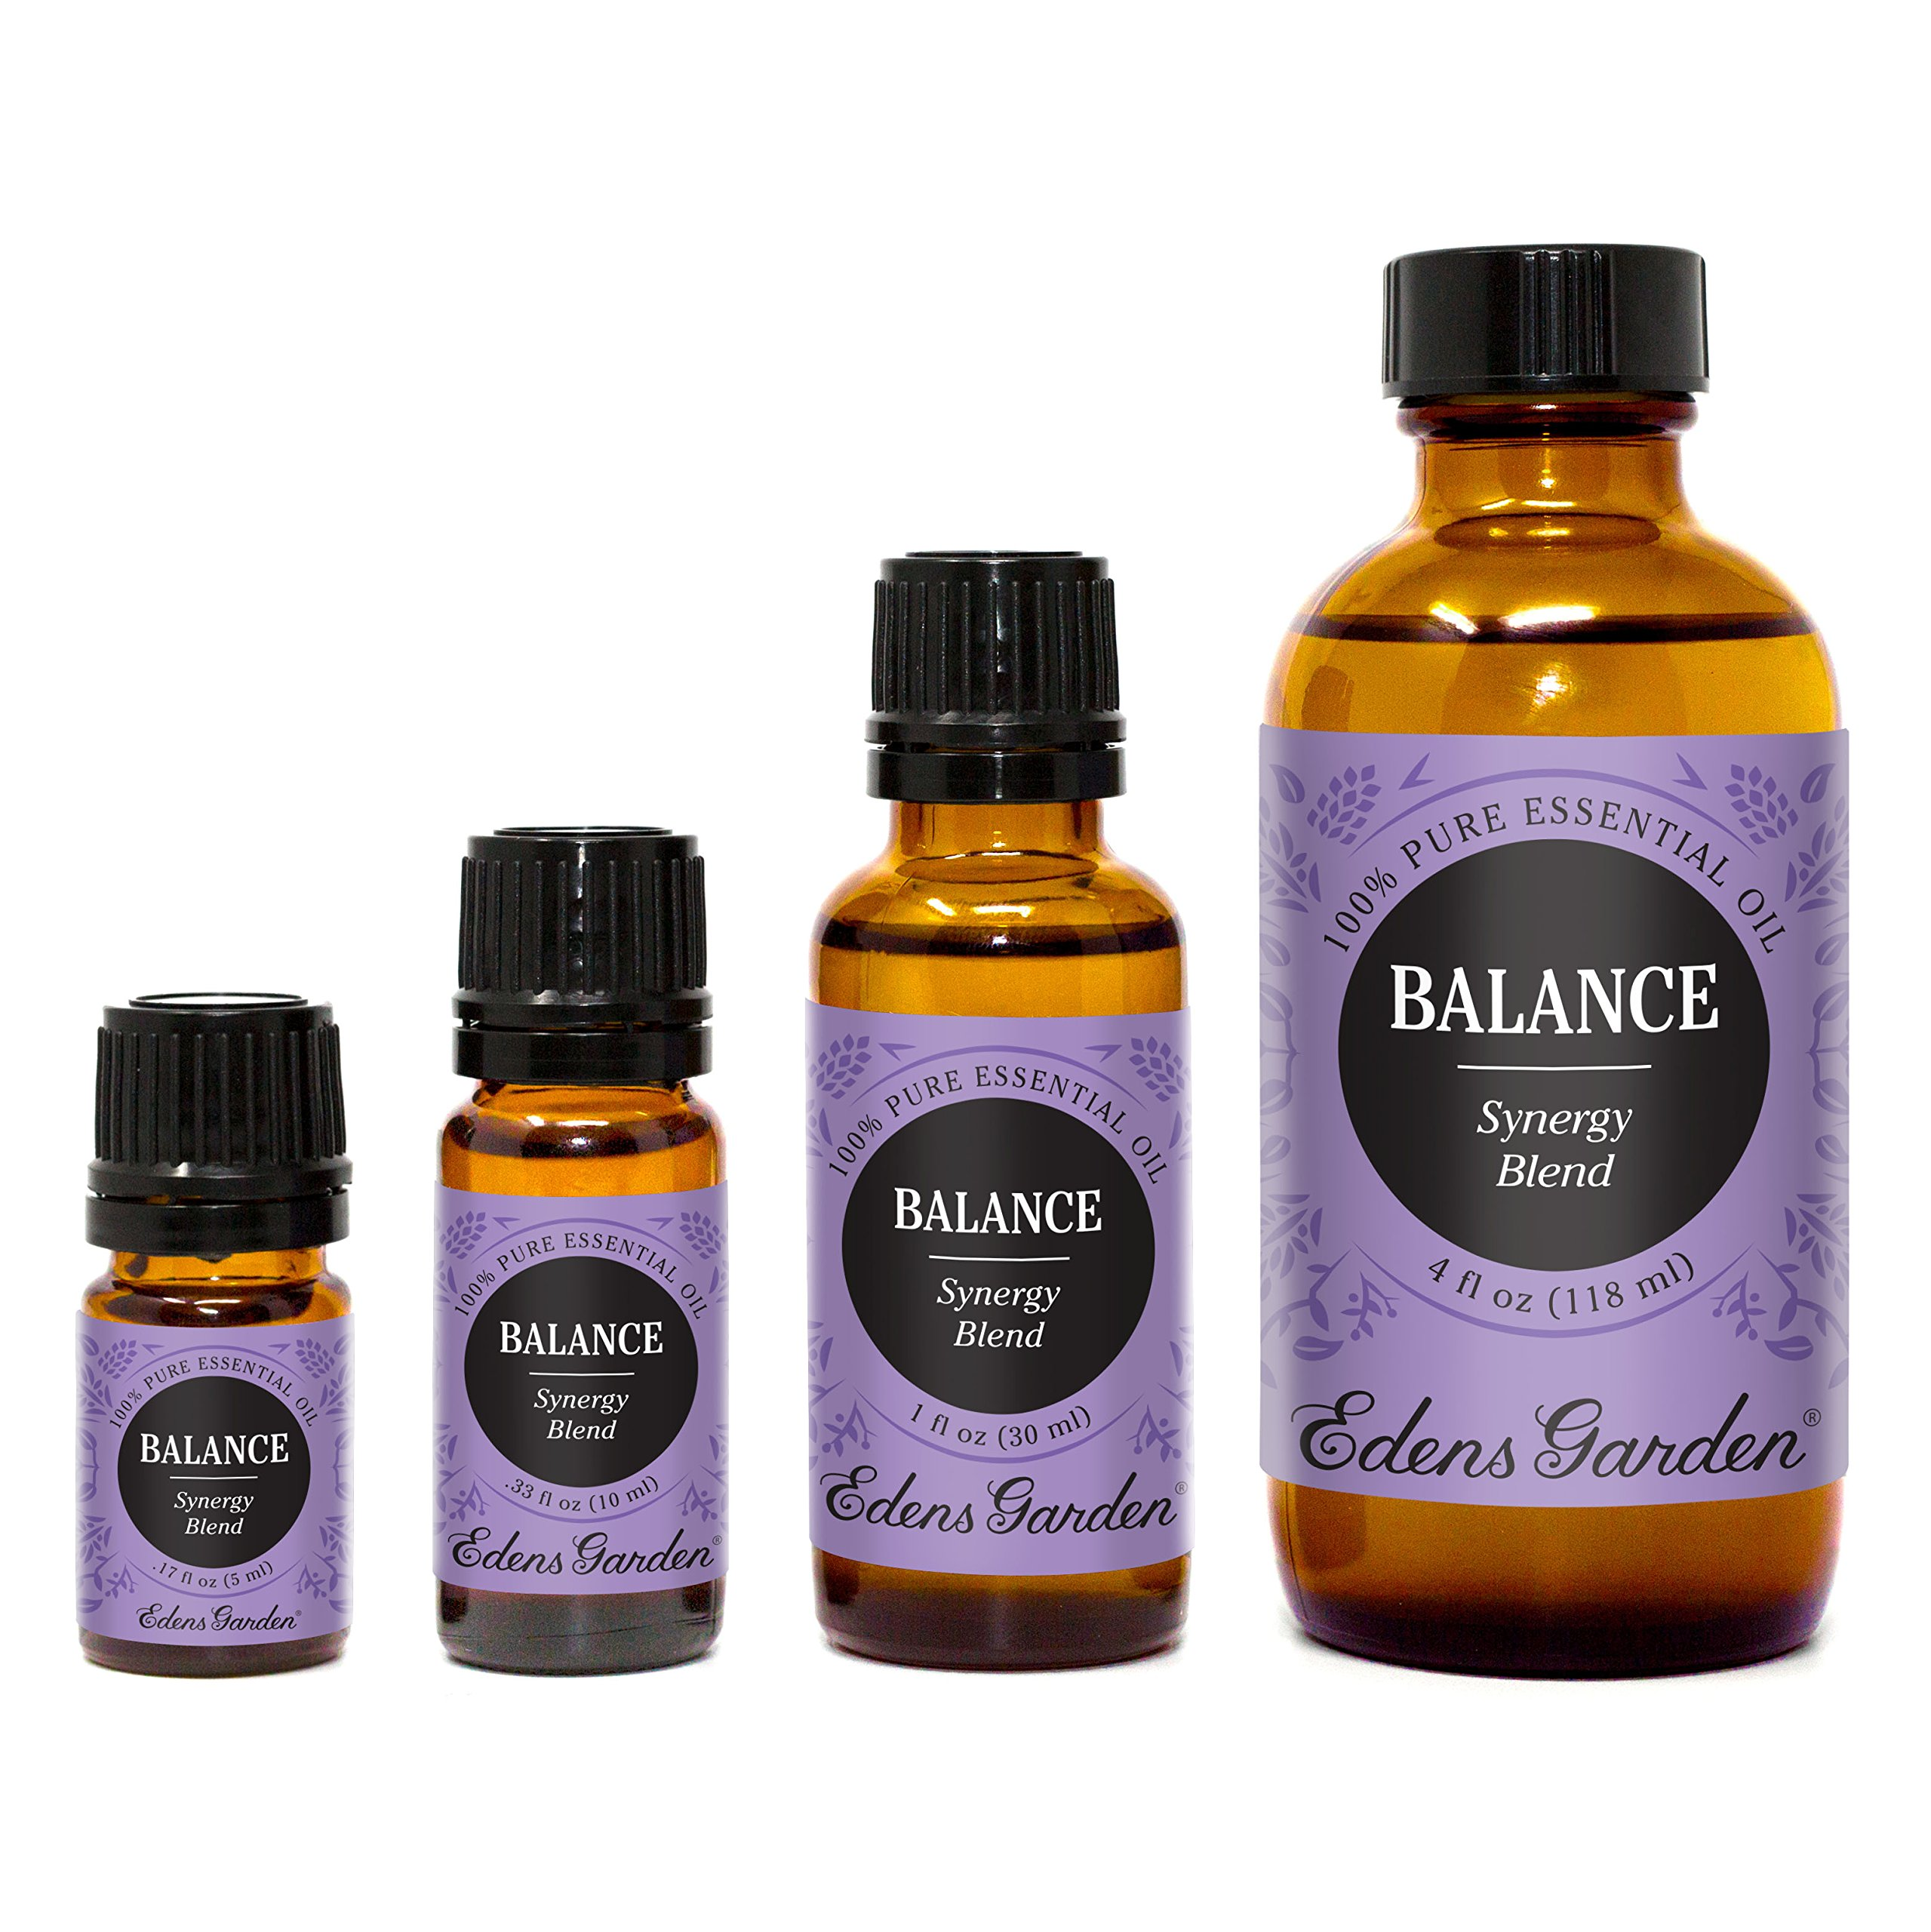 Edens Garden Balance Essential Oil Synergy Blend, 100% Pure Therapeutic Grade (Highest Quality Aromatherapy Oils- Stress & Womens Health), 30 ml